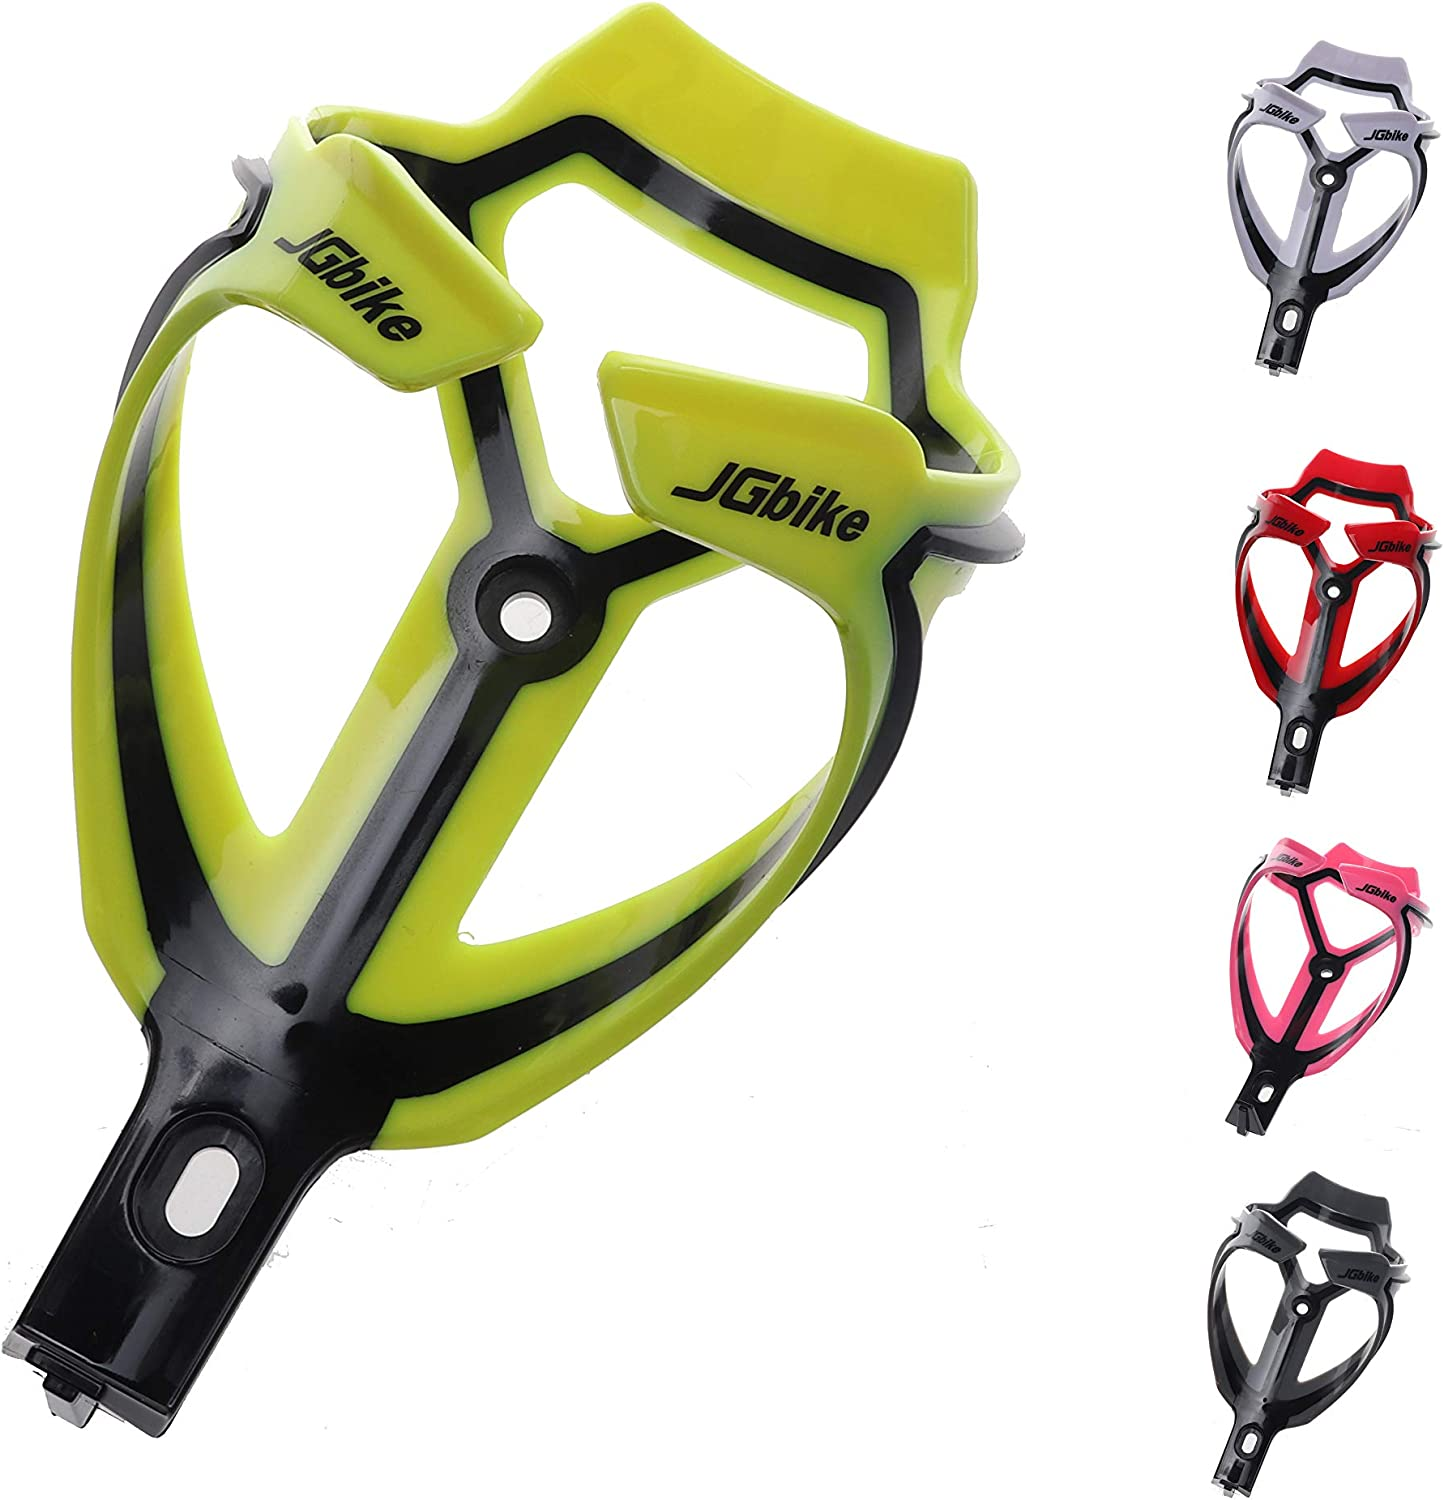 JGbike Water Bottle Cages Road MTB Bike Bicycle Polyamide Glass Fiber Lightweight Water Bottle Holder Cages Brackets